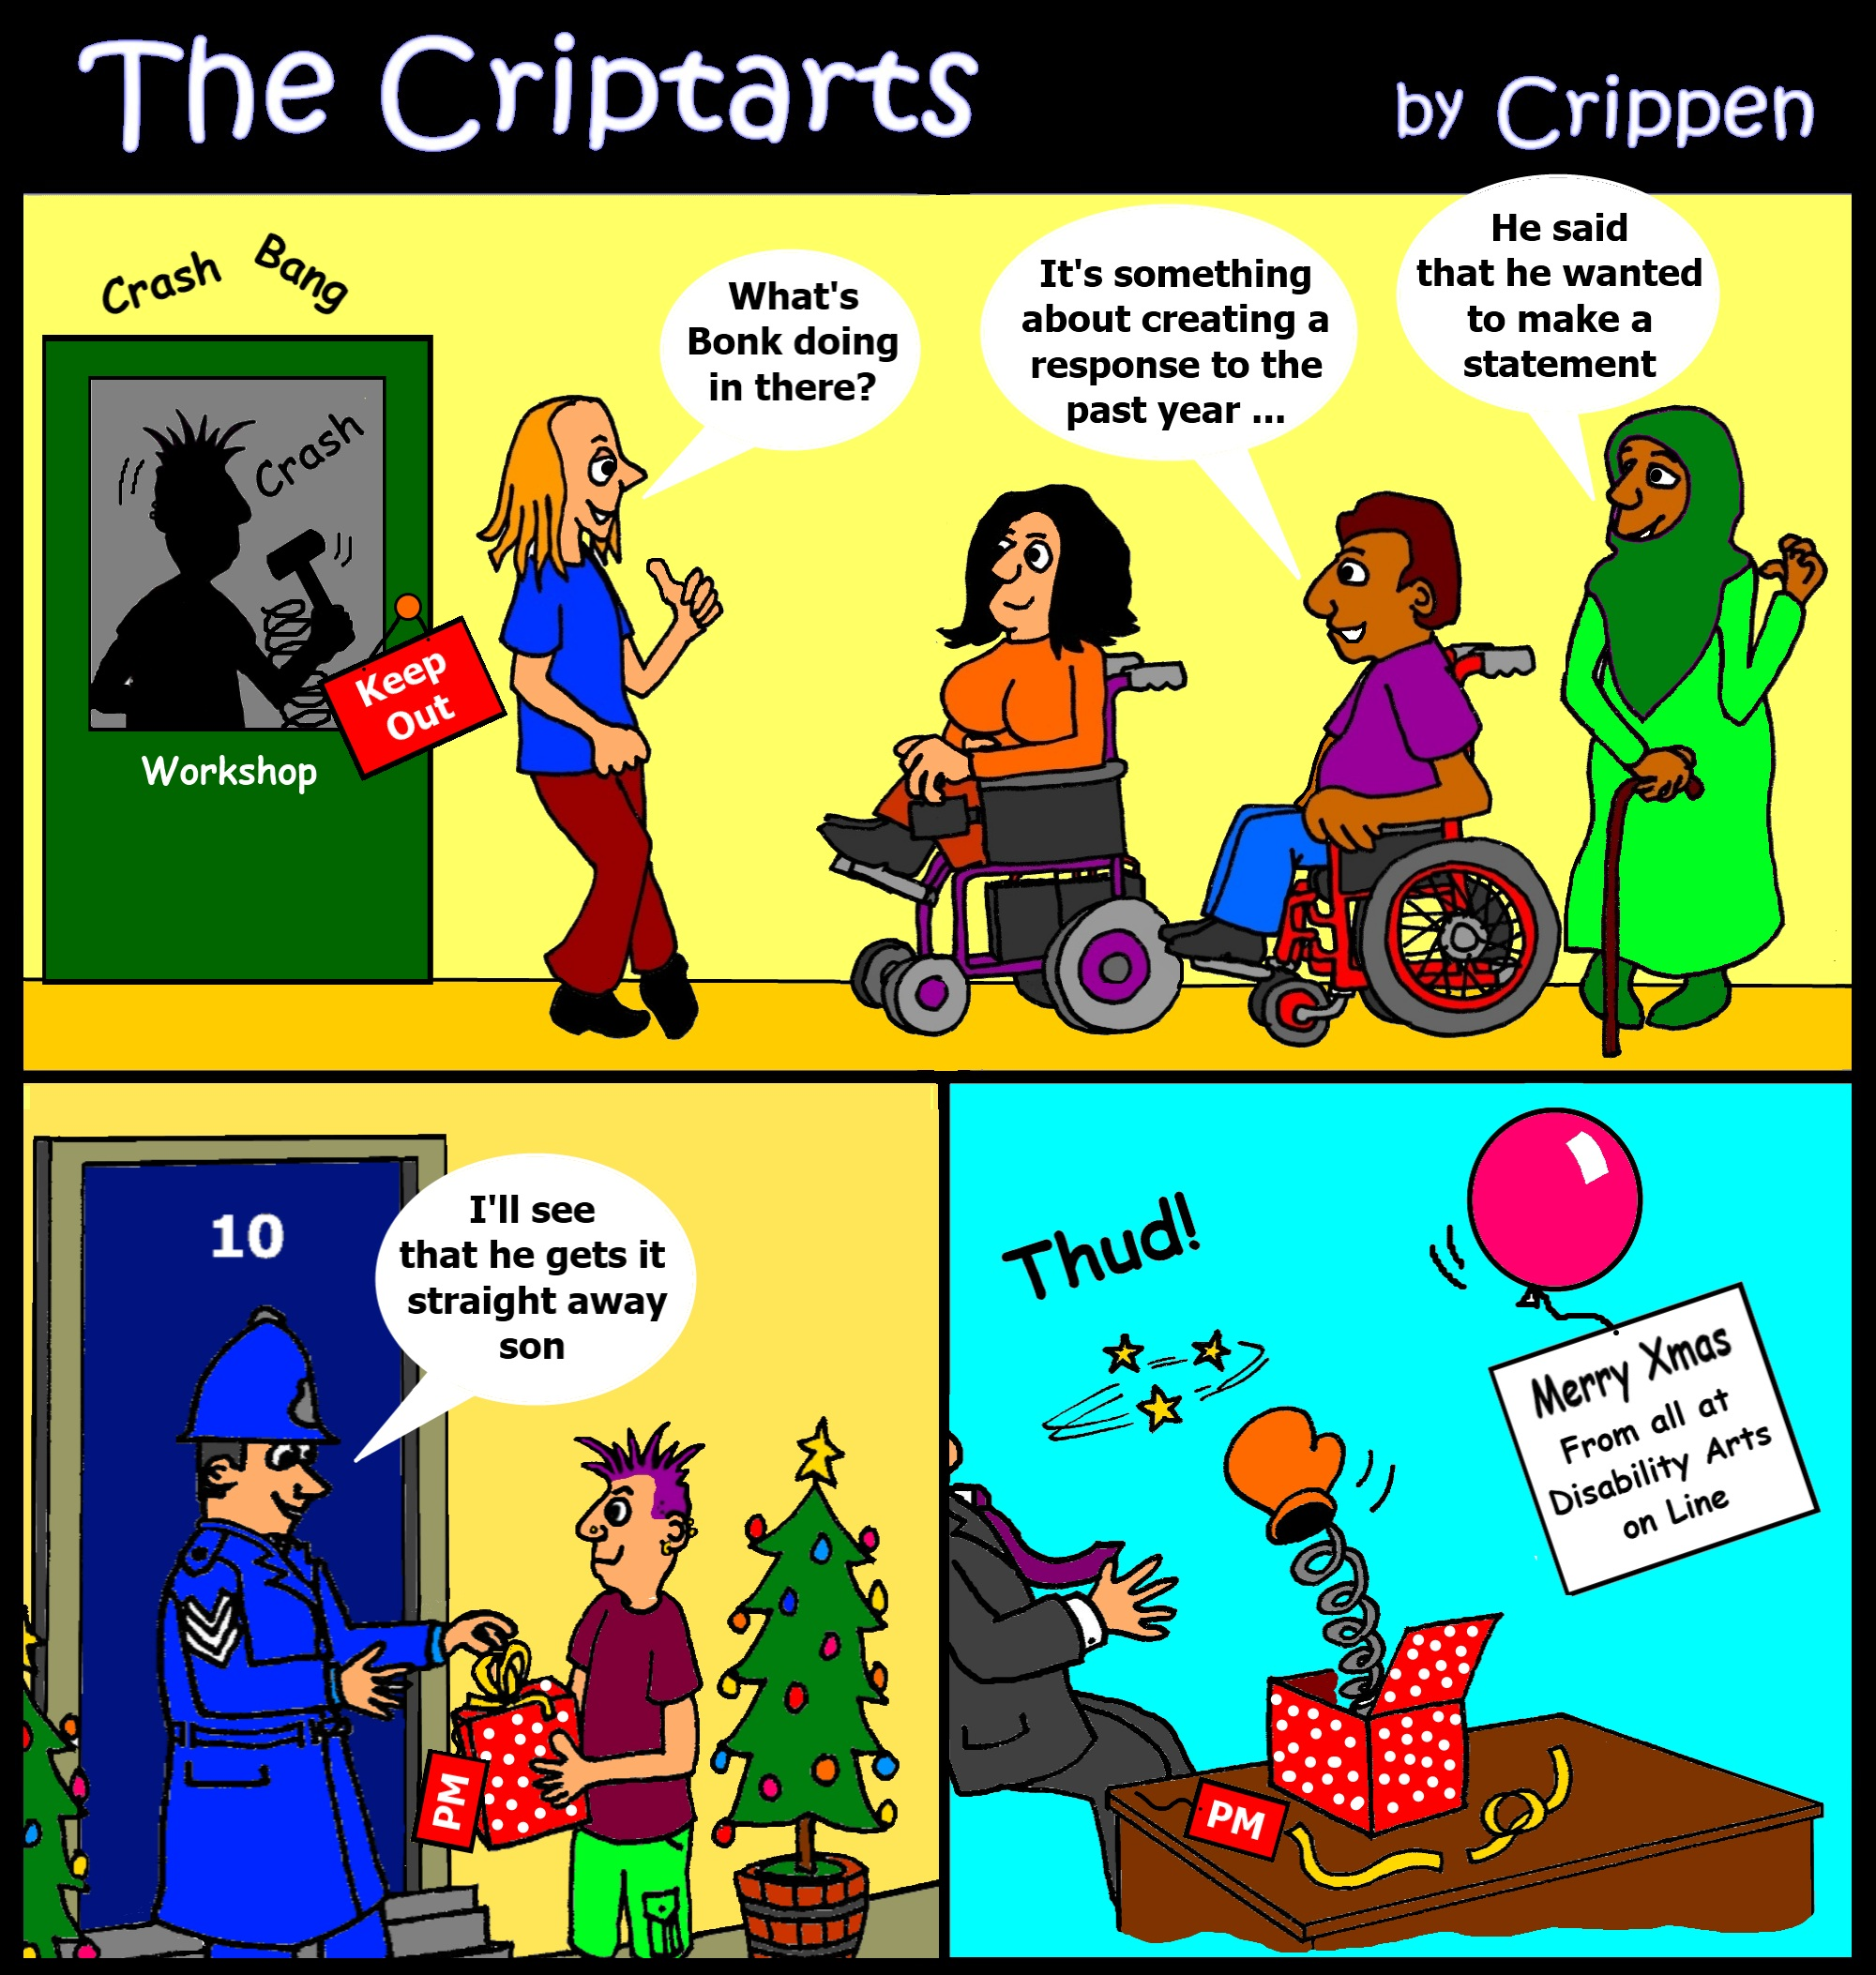 The Criptarts deliver a personal message to Downing Street for Christmas